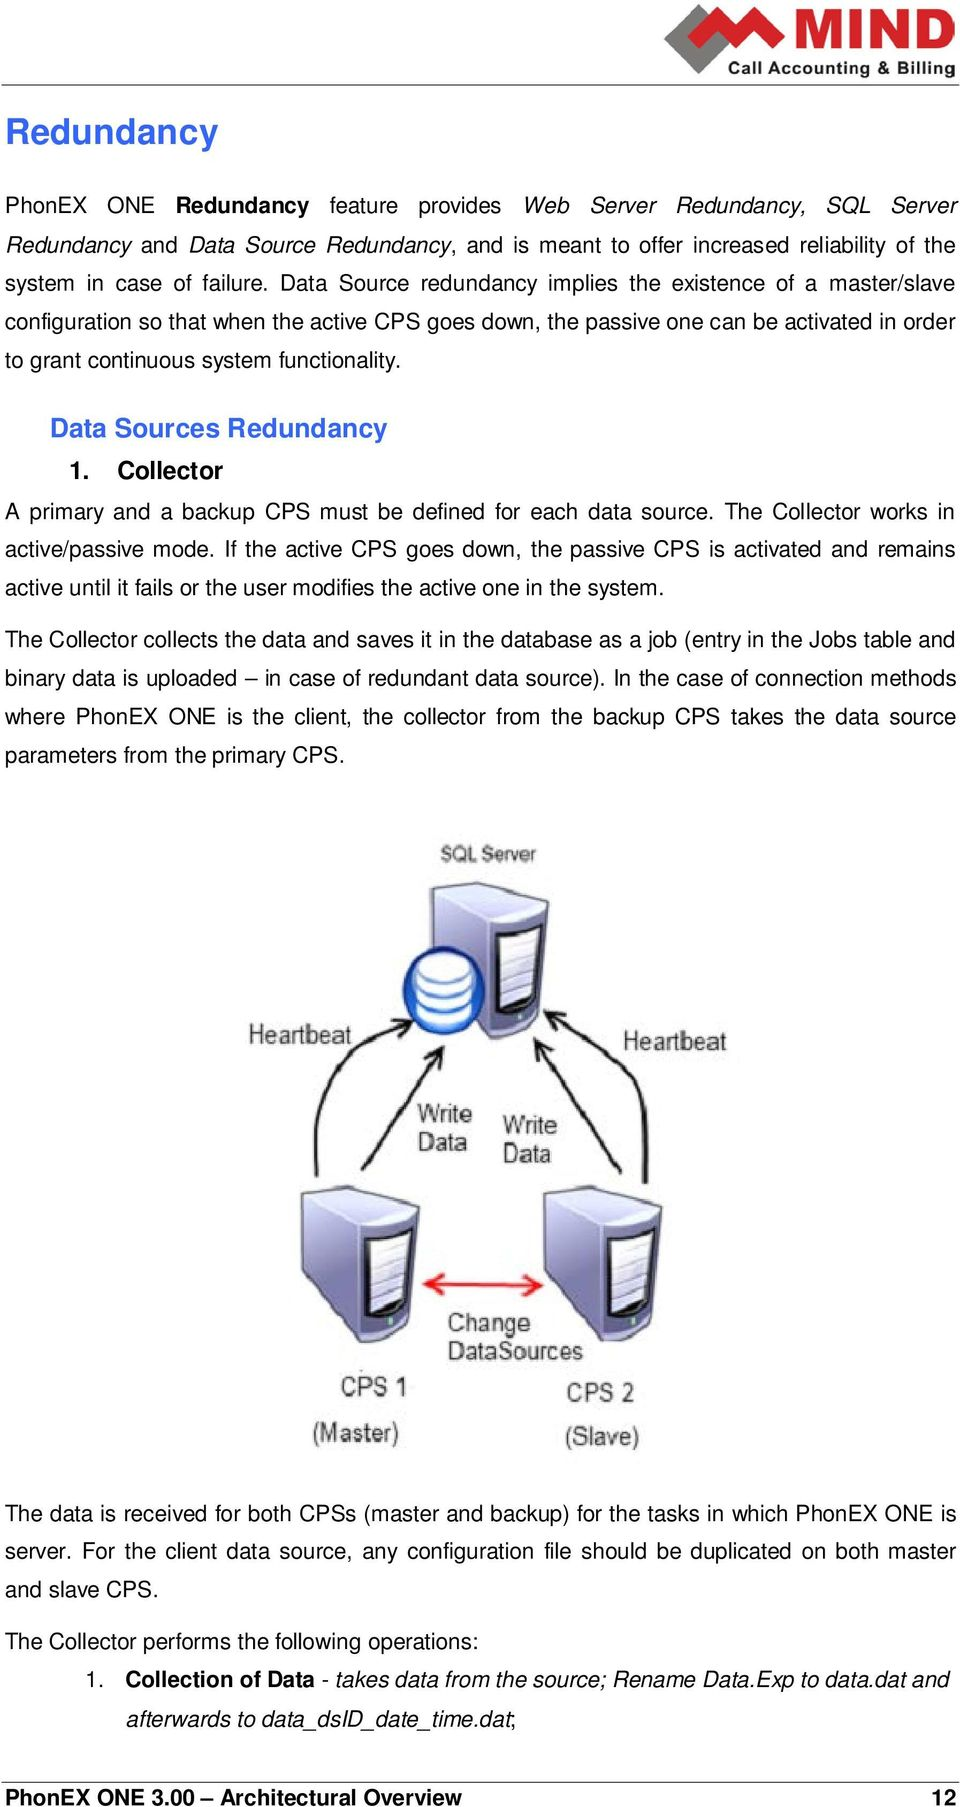 Data Sources Redundancy 1. Collector A primary and a backup CPS must be defined for each data source. The Collector works in active/passive mode.